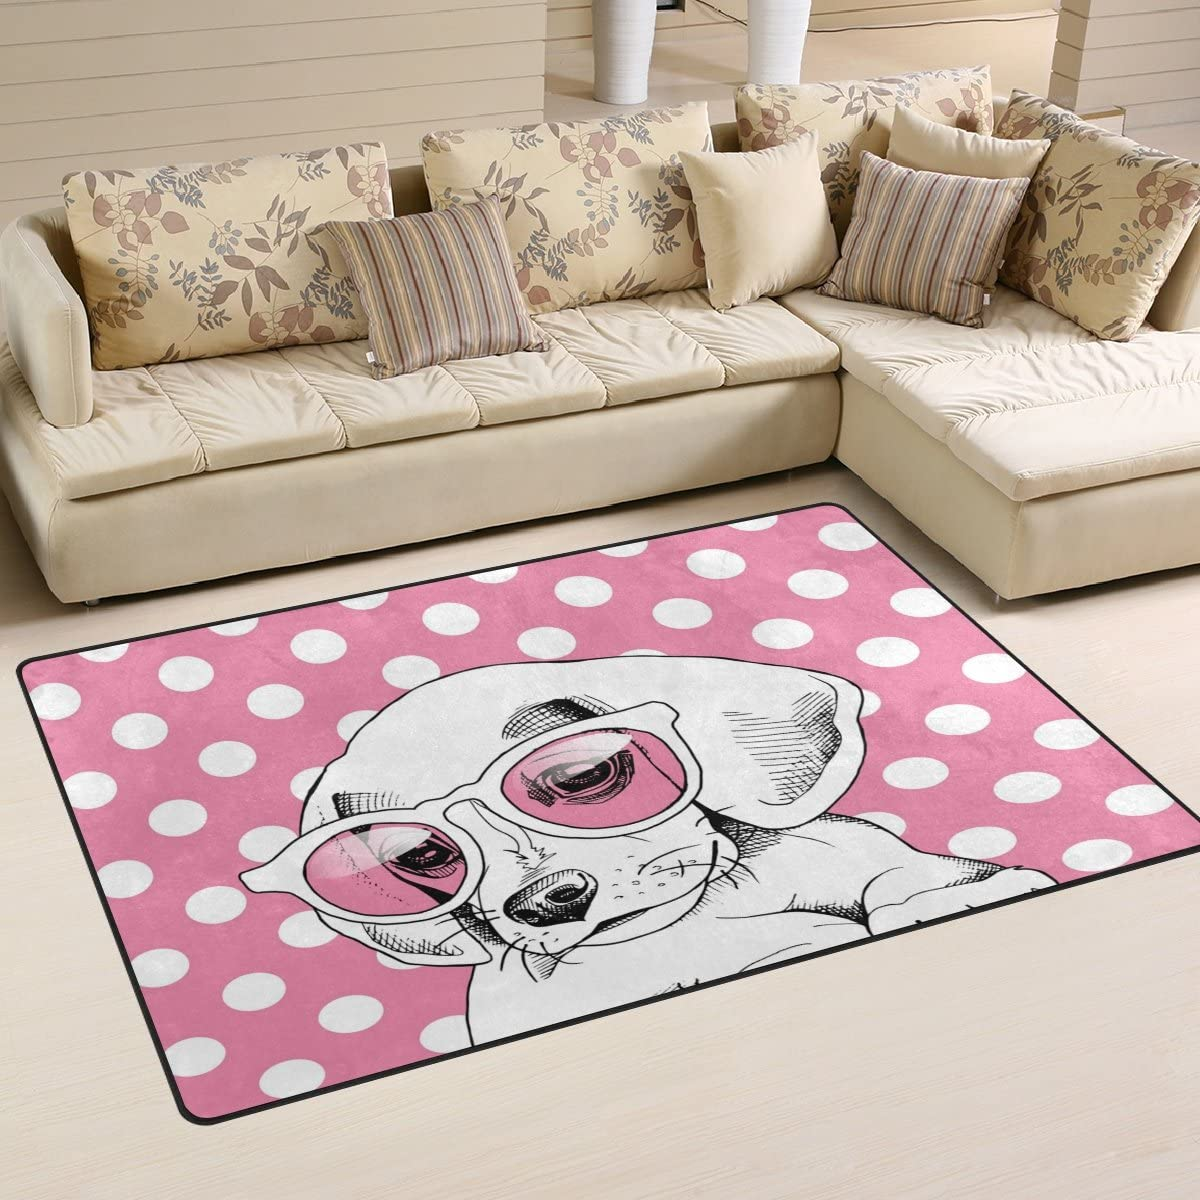 WOZO Pink Polka Dot Puppy Dog